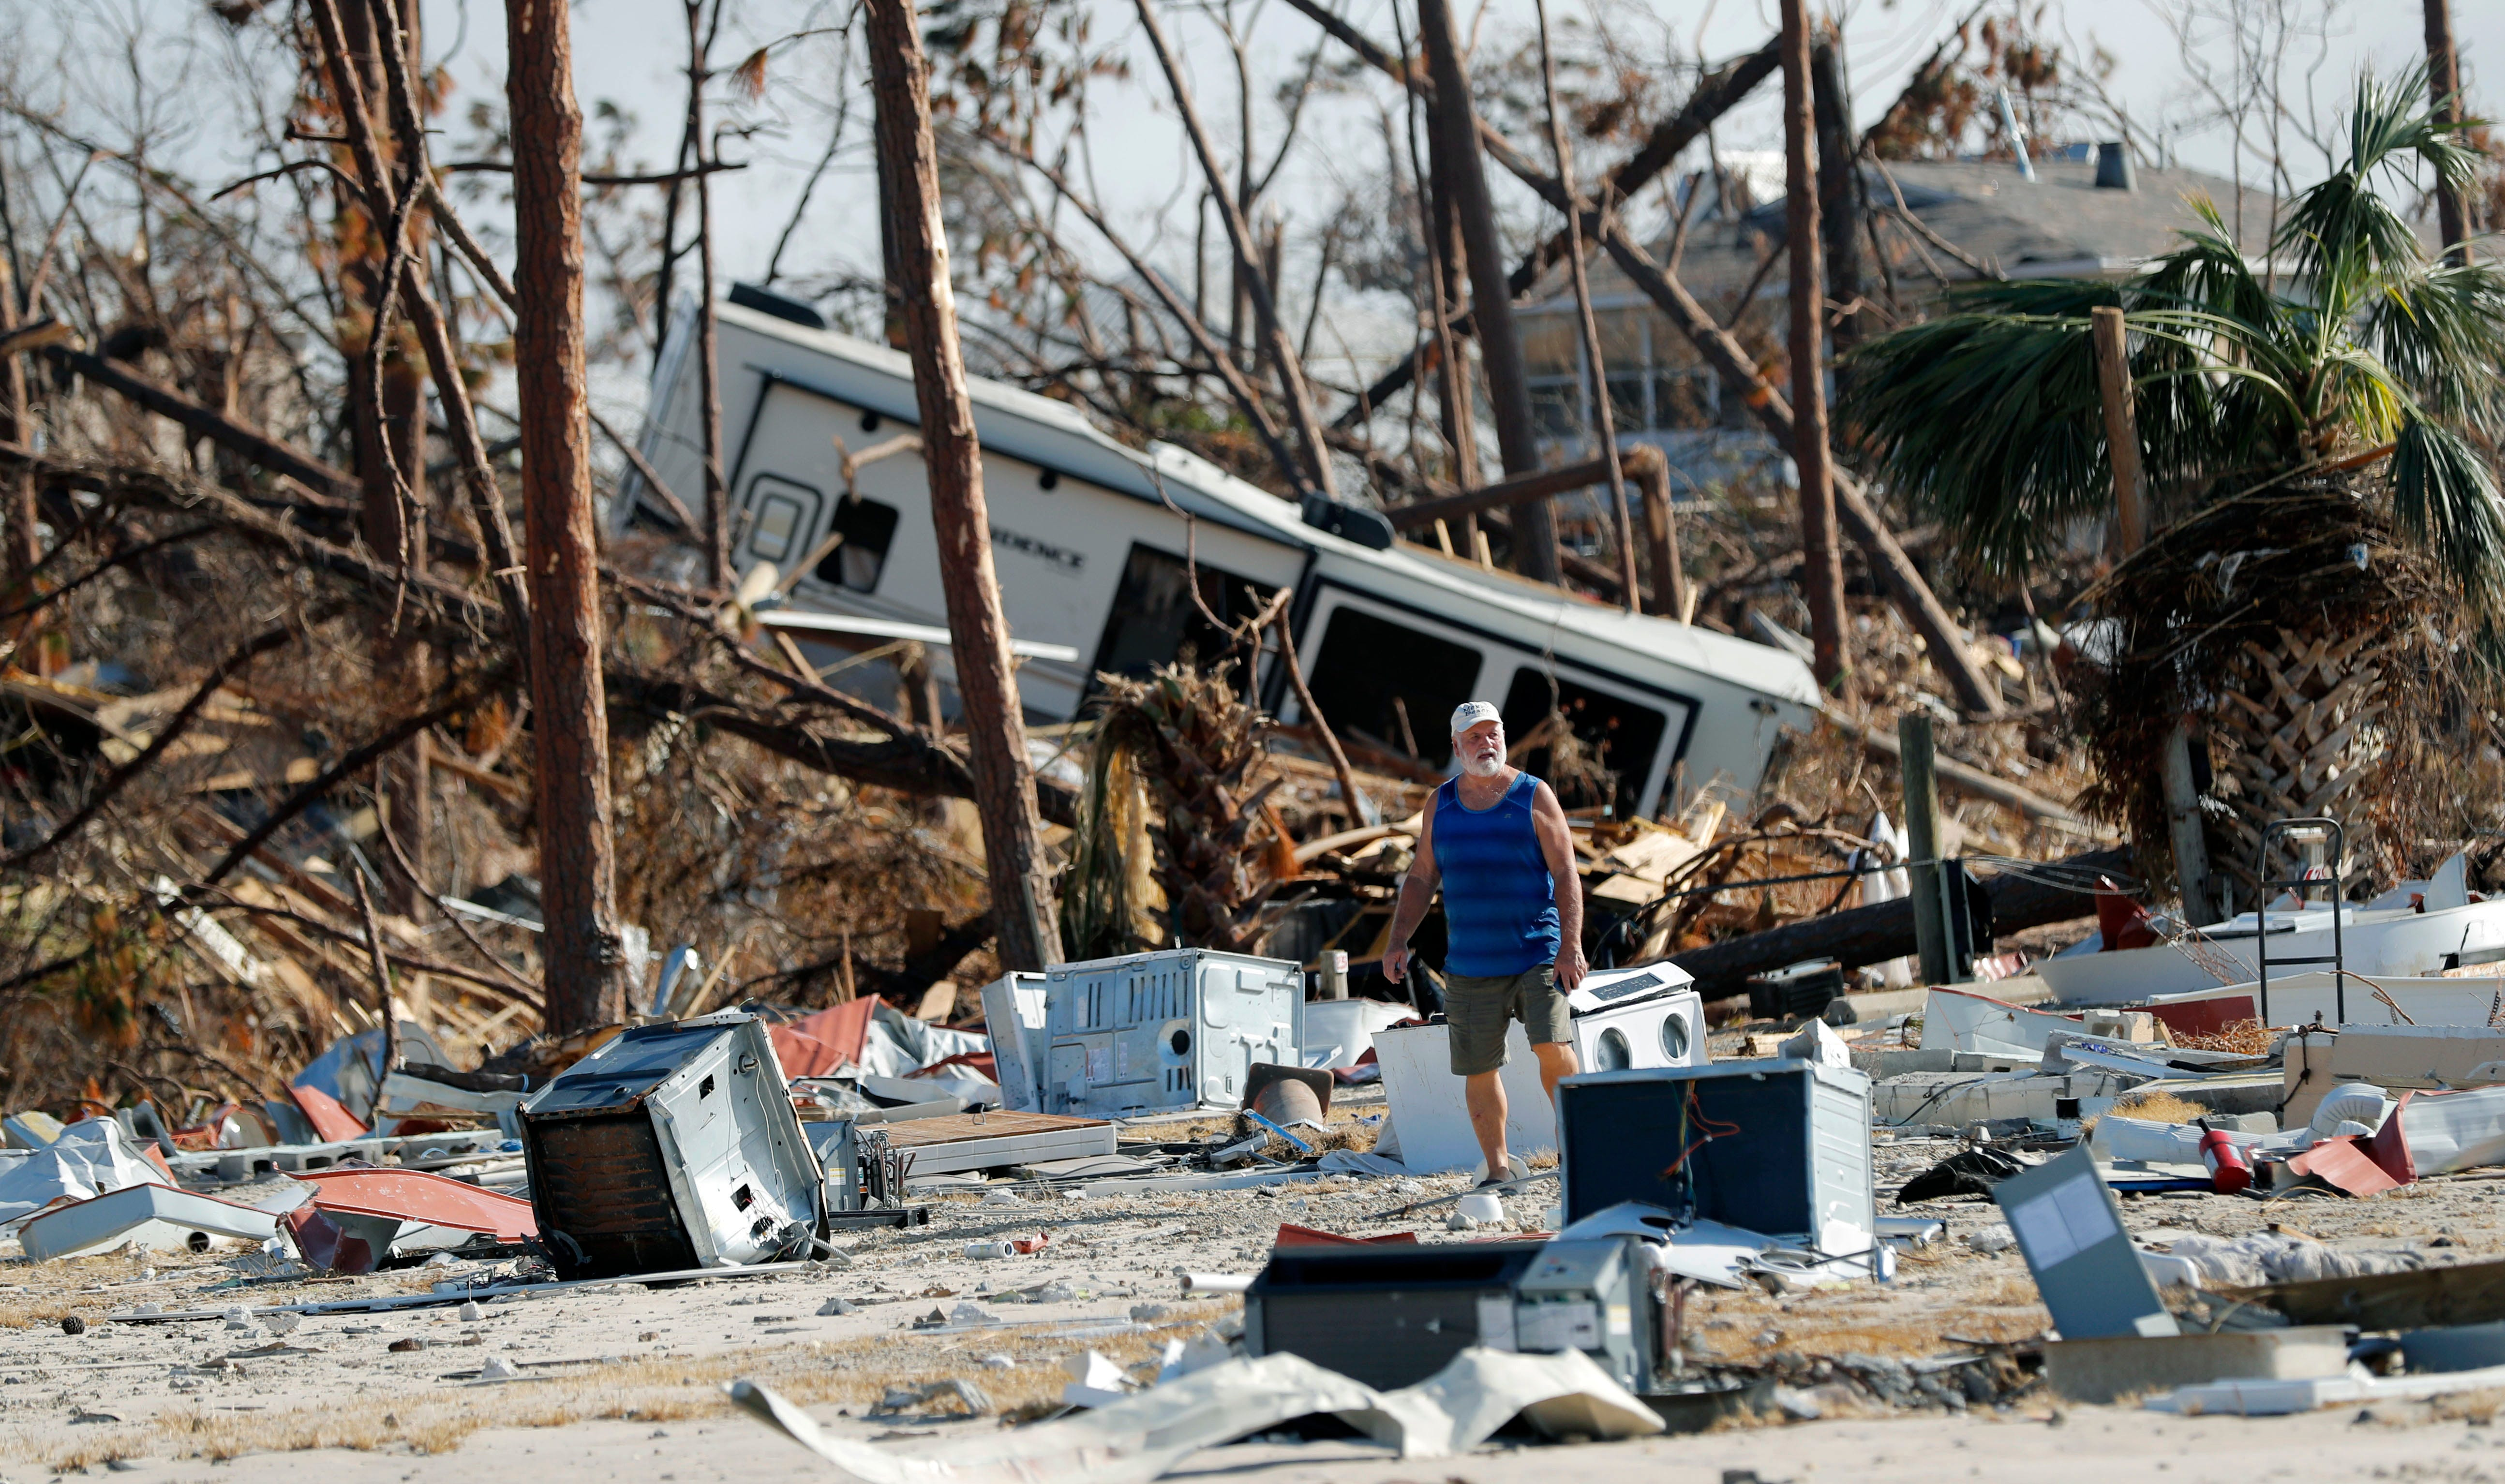 7 more deaths raise Hurricane Michael toll to 33; residents trickle back to devastated areas